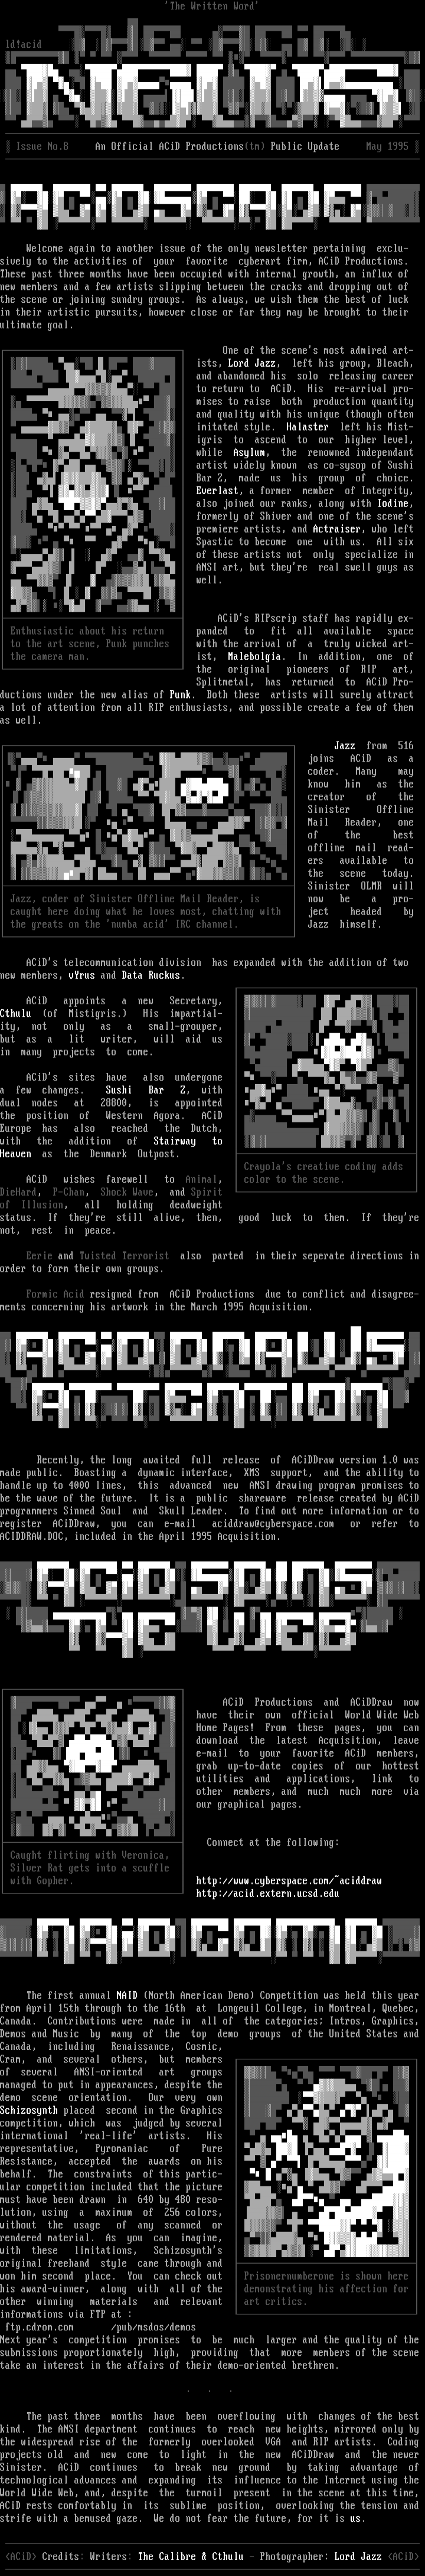 ACiD Newsletter Issue #7 (05/95) by ACiD Press